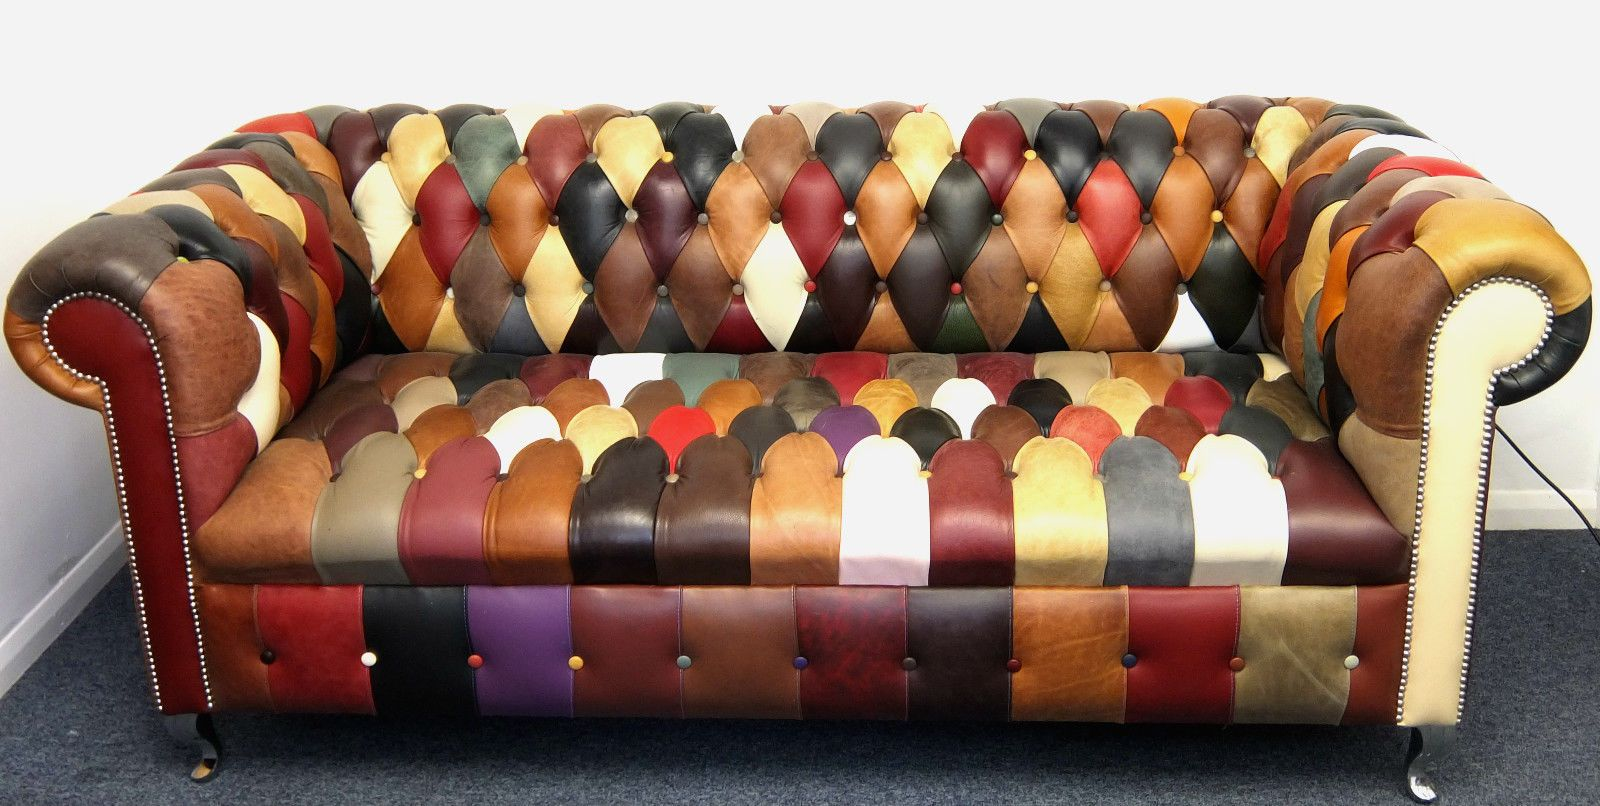 Kaleidoscope Chesterfield Large Sofa Rrp 2495 Patchwork Leather Seat Ebay